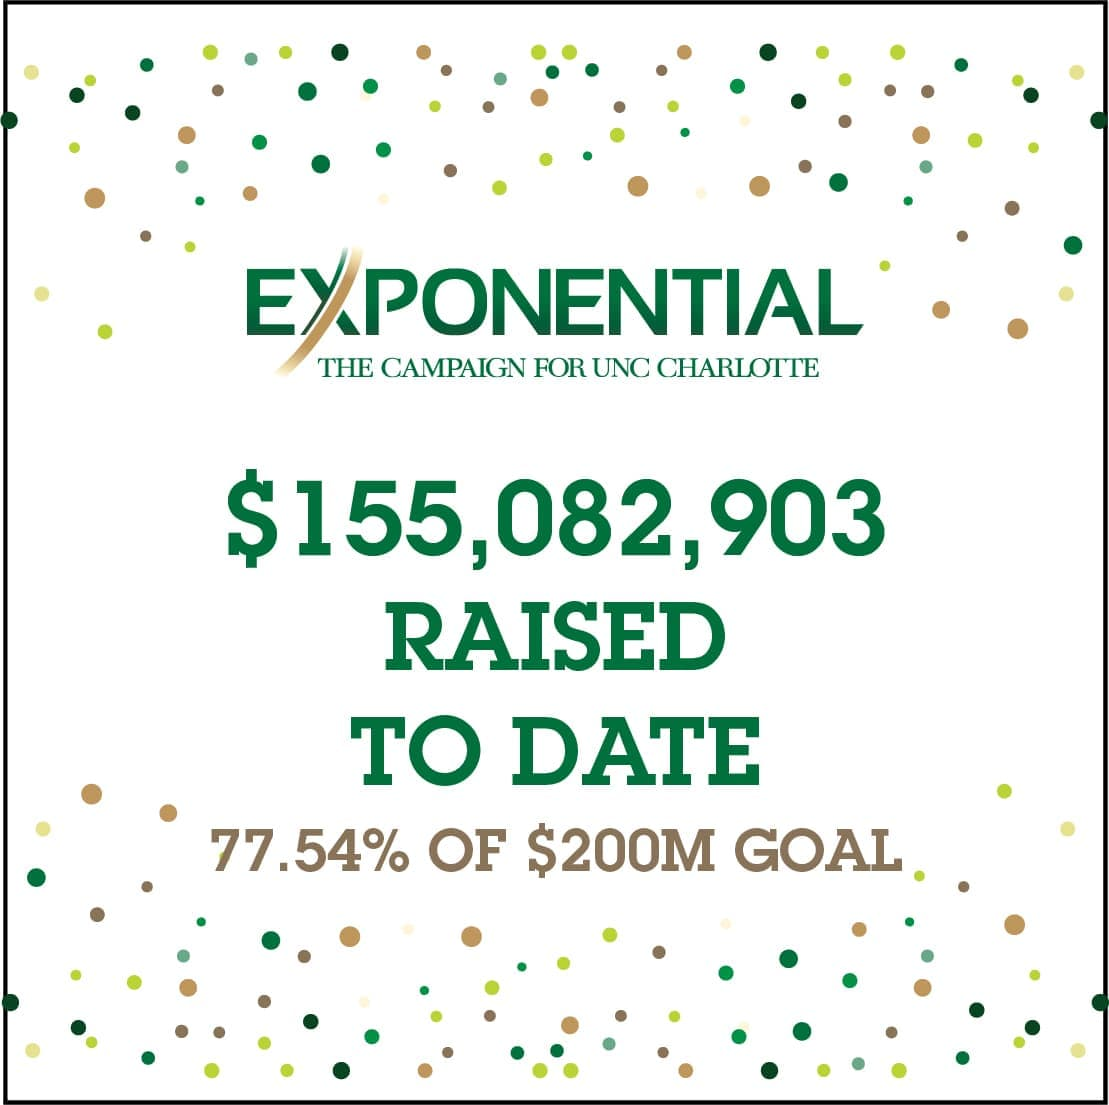 Exponential: $155,082,903 raised to date - 77.54% of $200M goal